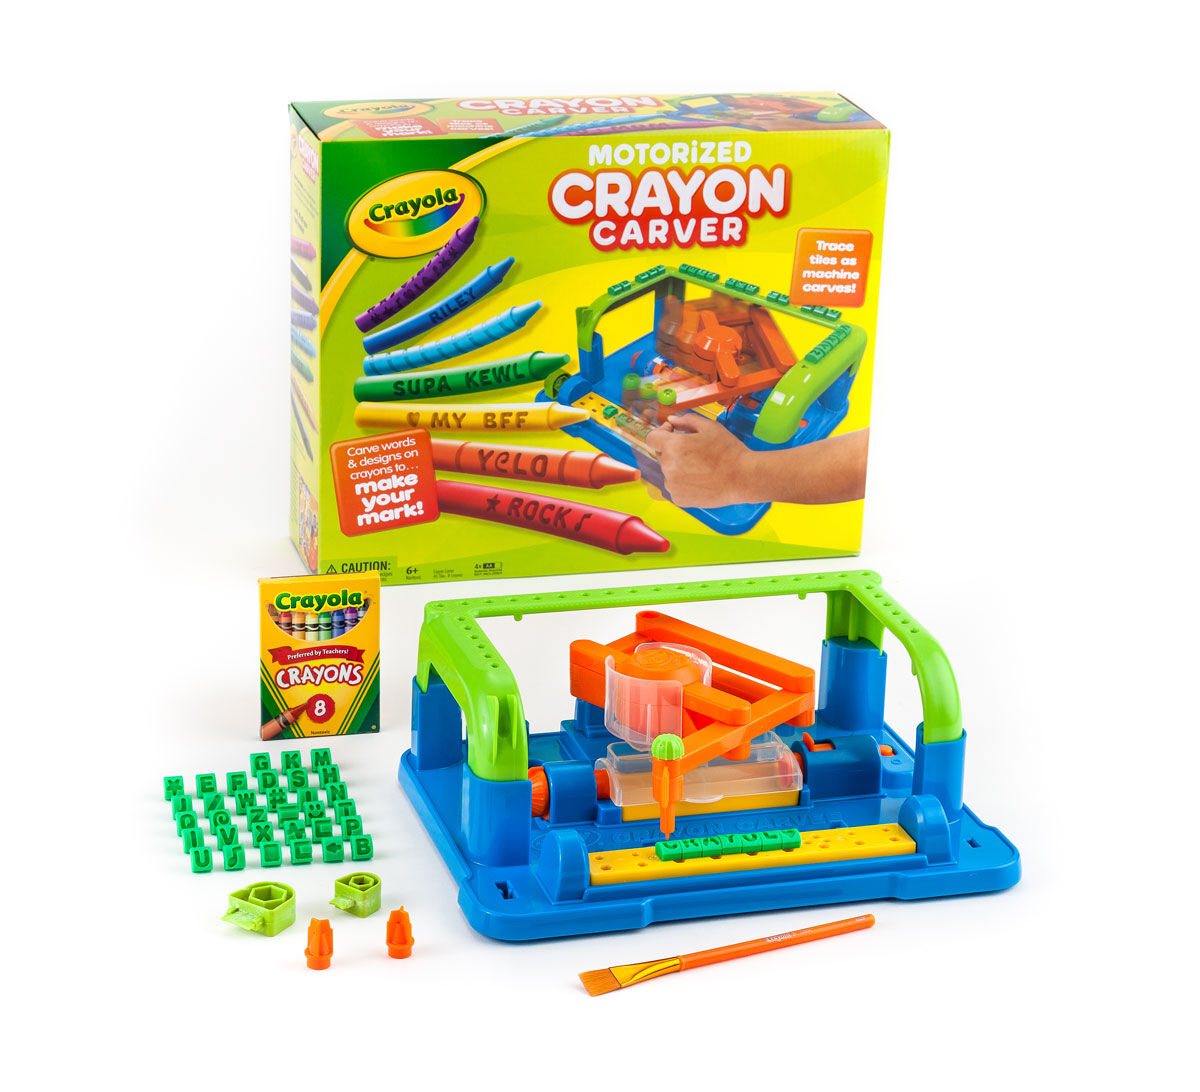 crayola crayon carver instructions